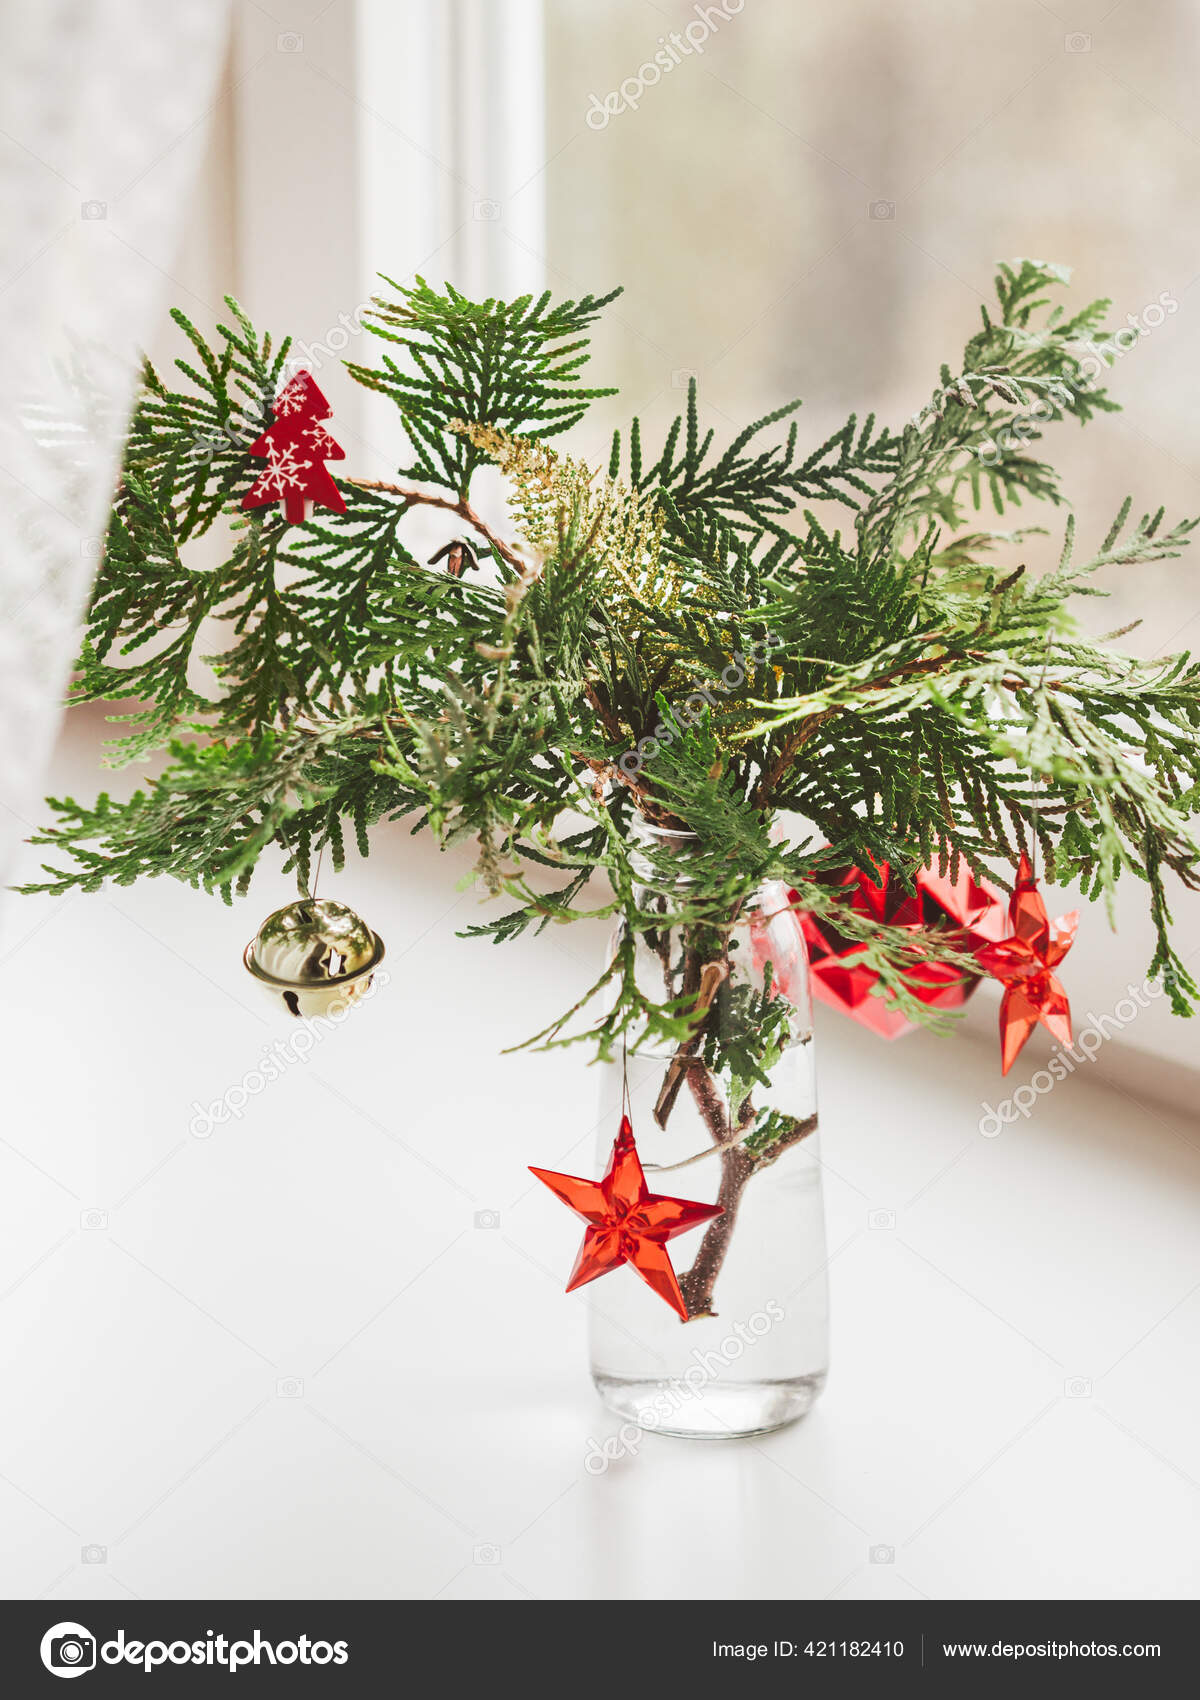 Vase Decorated Thuja Branches Stands Window Sill Sustainable Alternative Christmas Stock Photo C Aksenovko 421182410